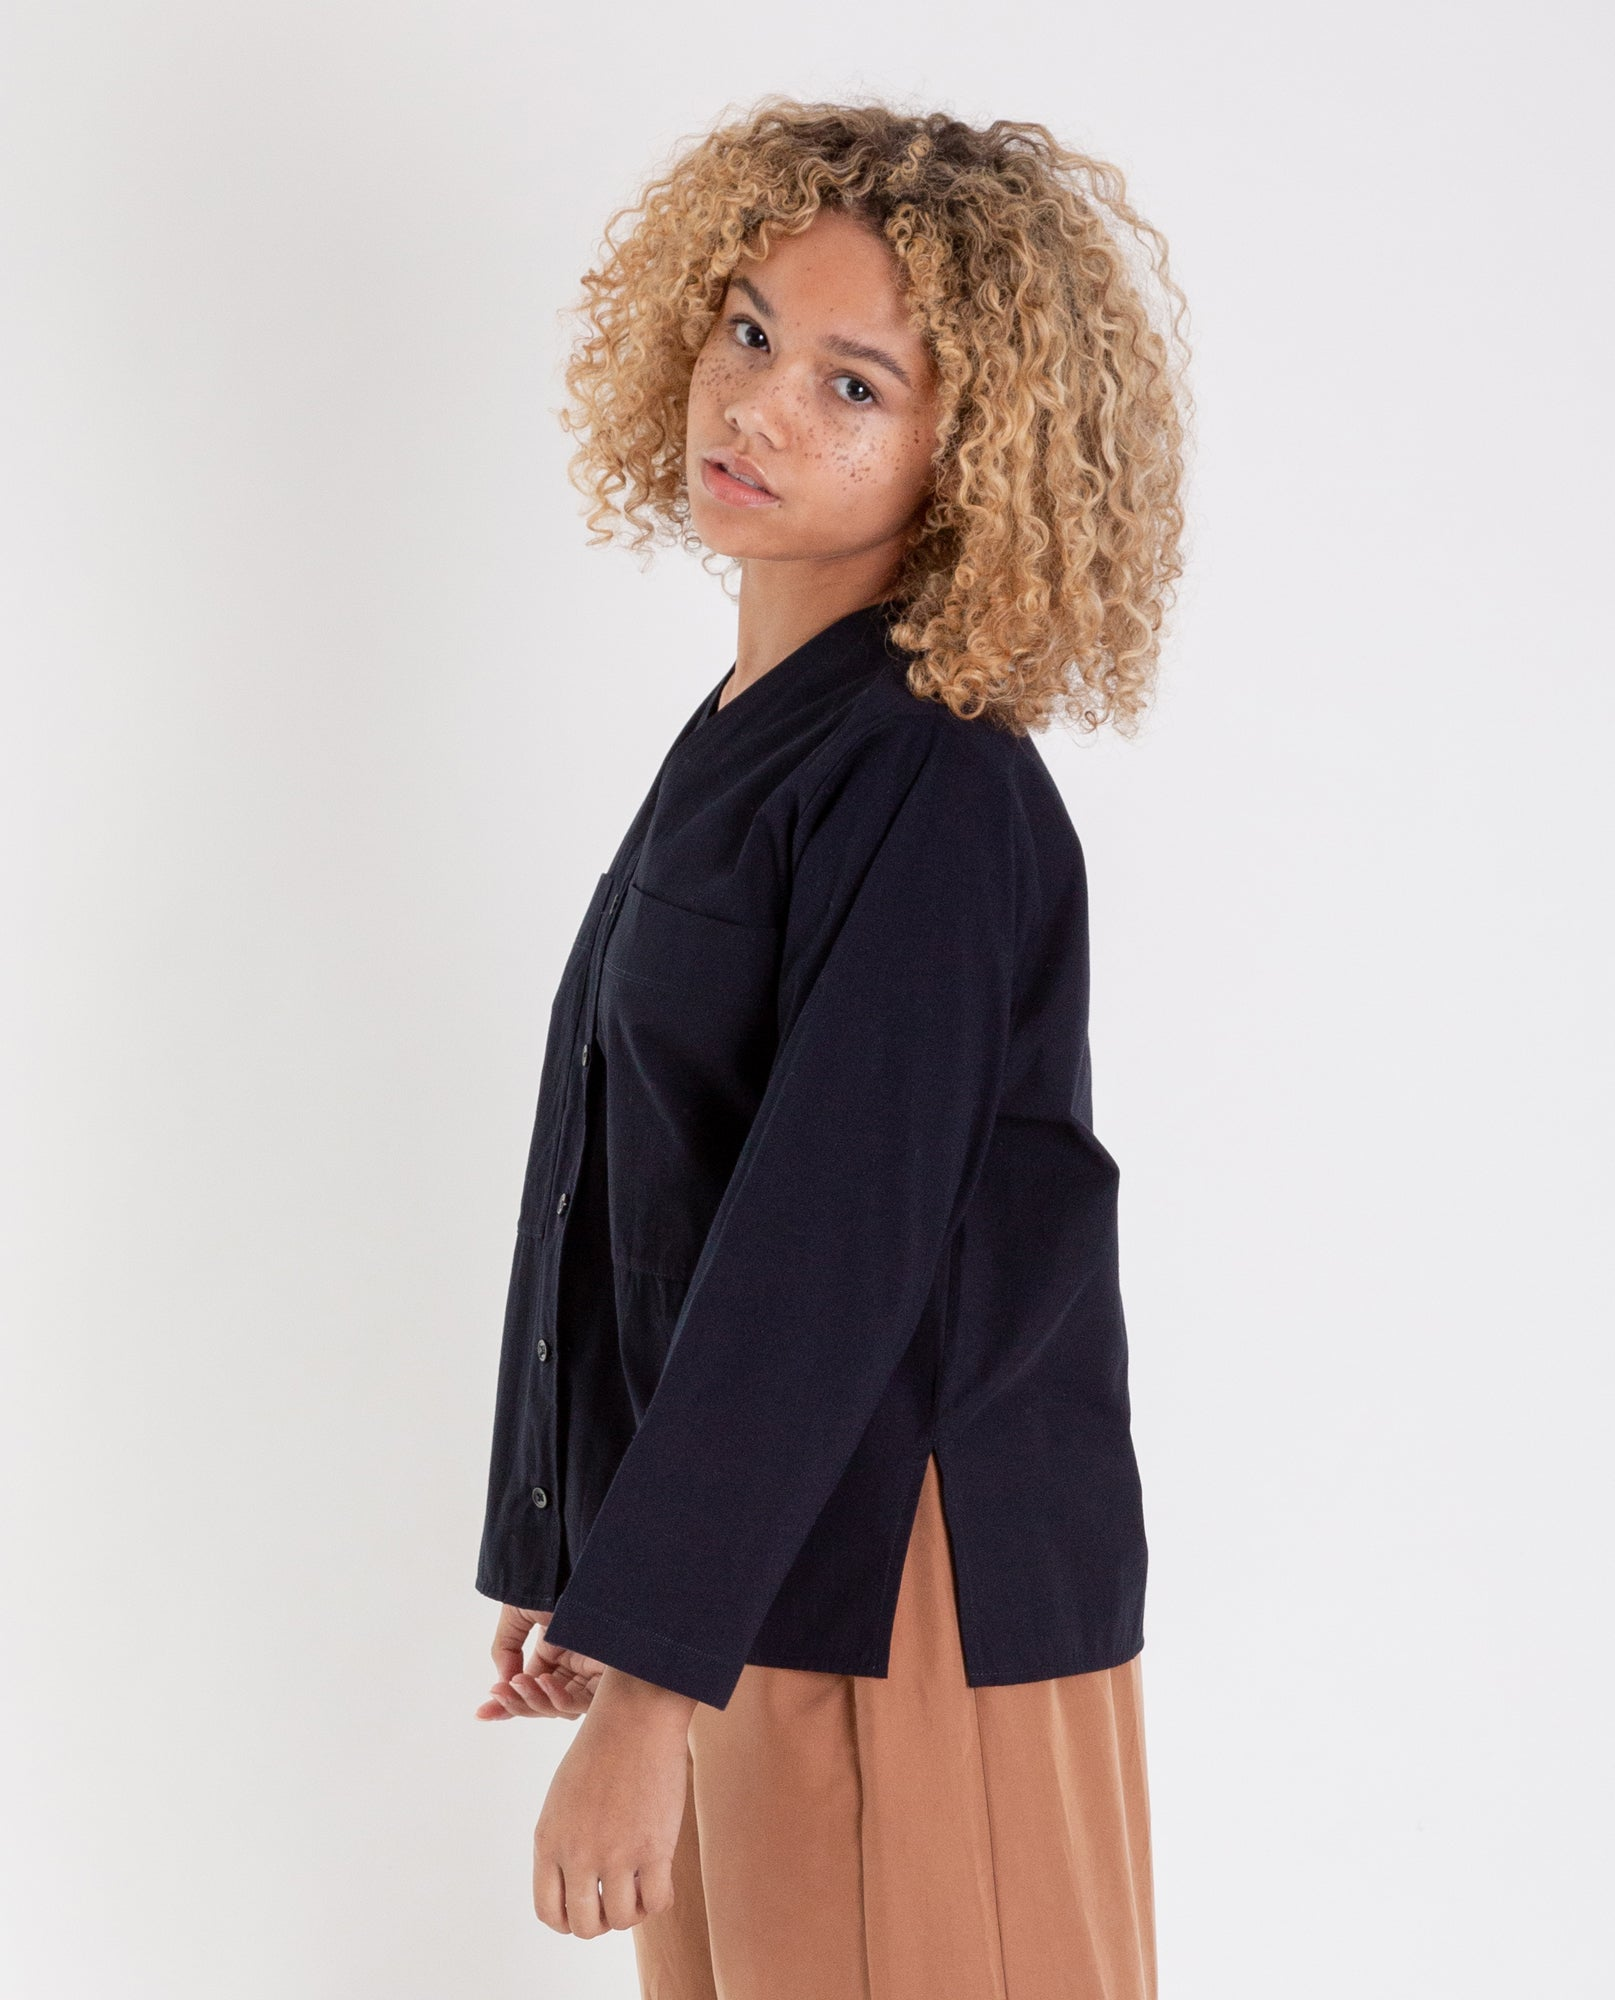 BELLA Organic Cotton Shirt in Deep Indigo